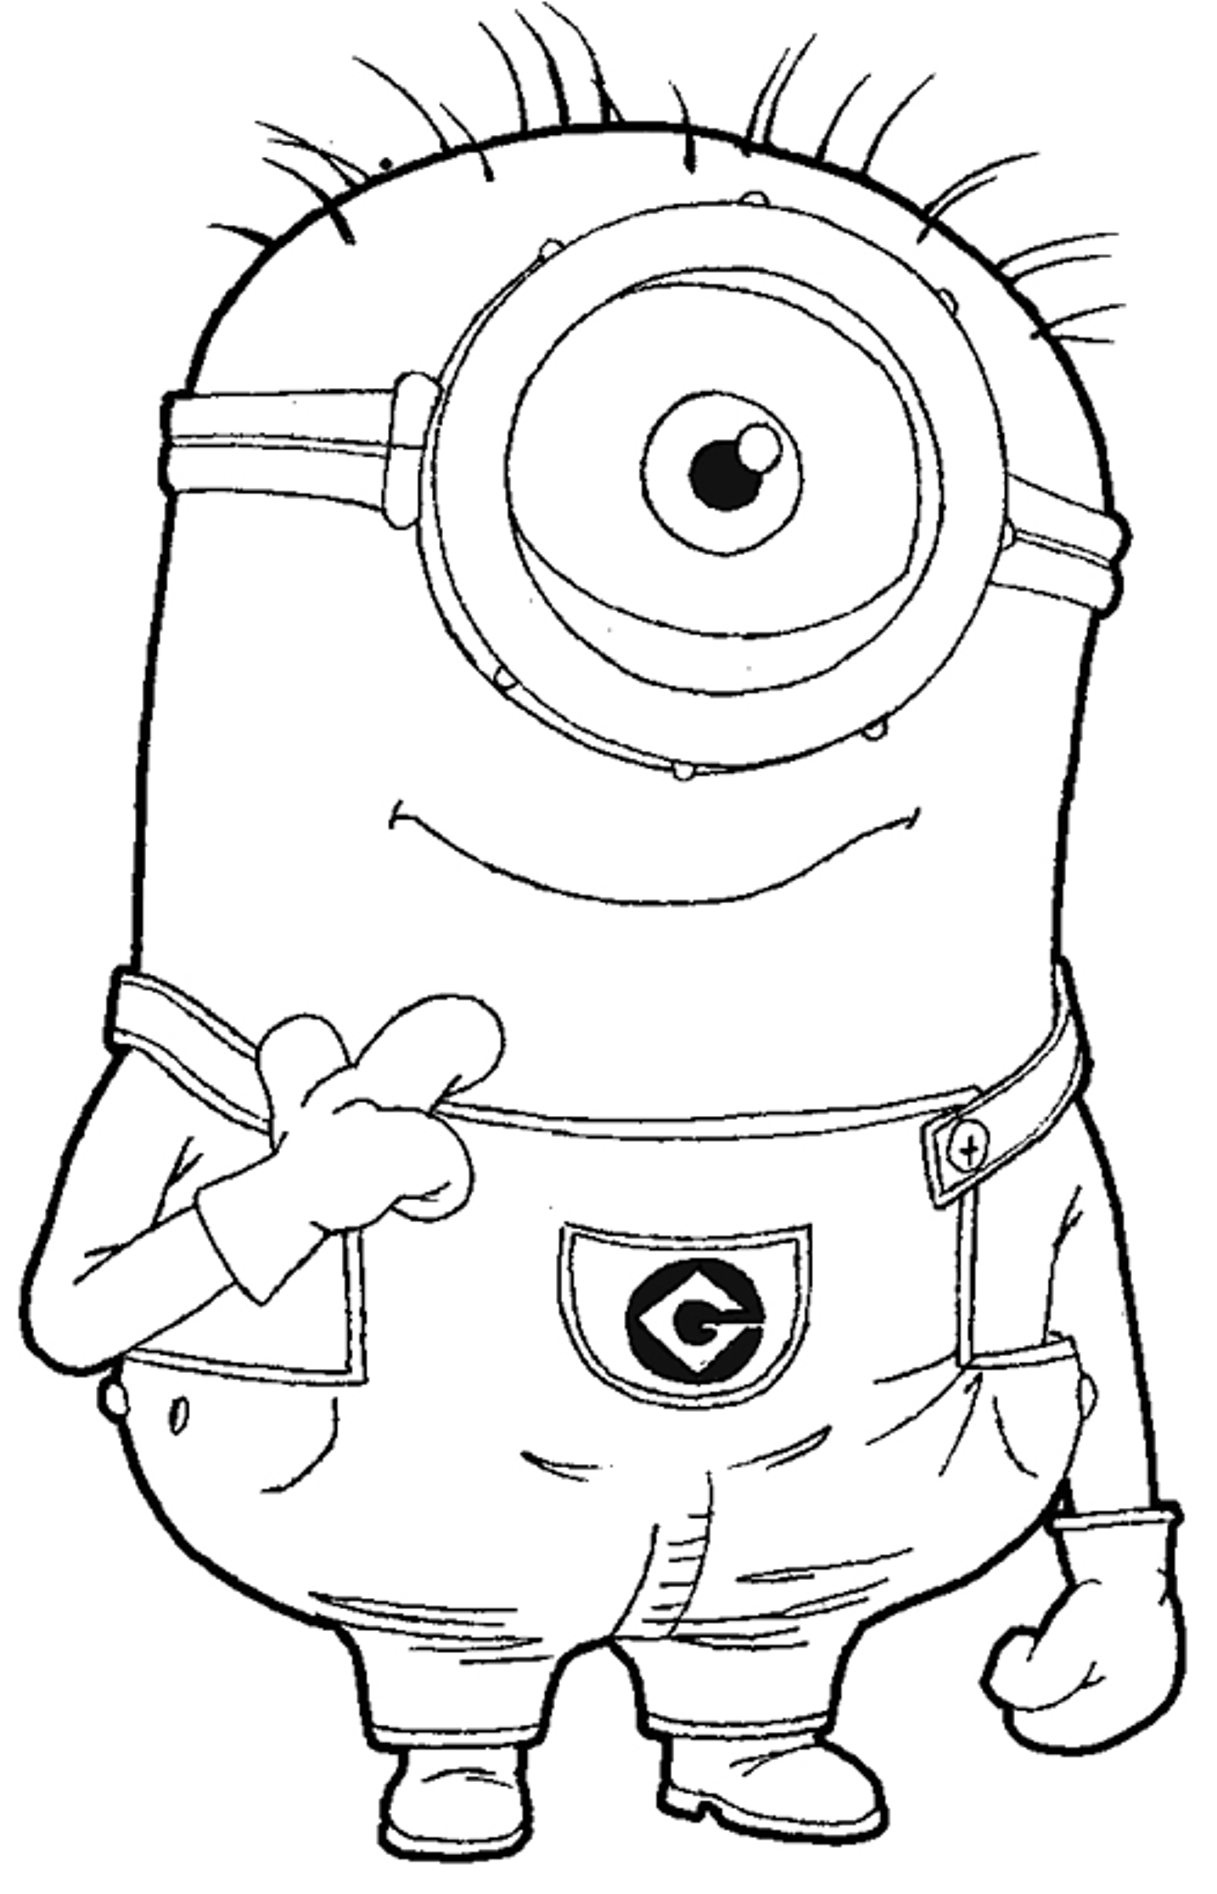 1217x1894 Elegant For Kids Despicable Me Coloring Pages On Despicable Me